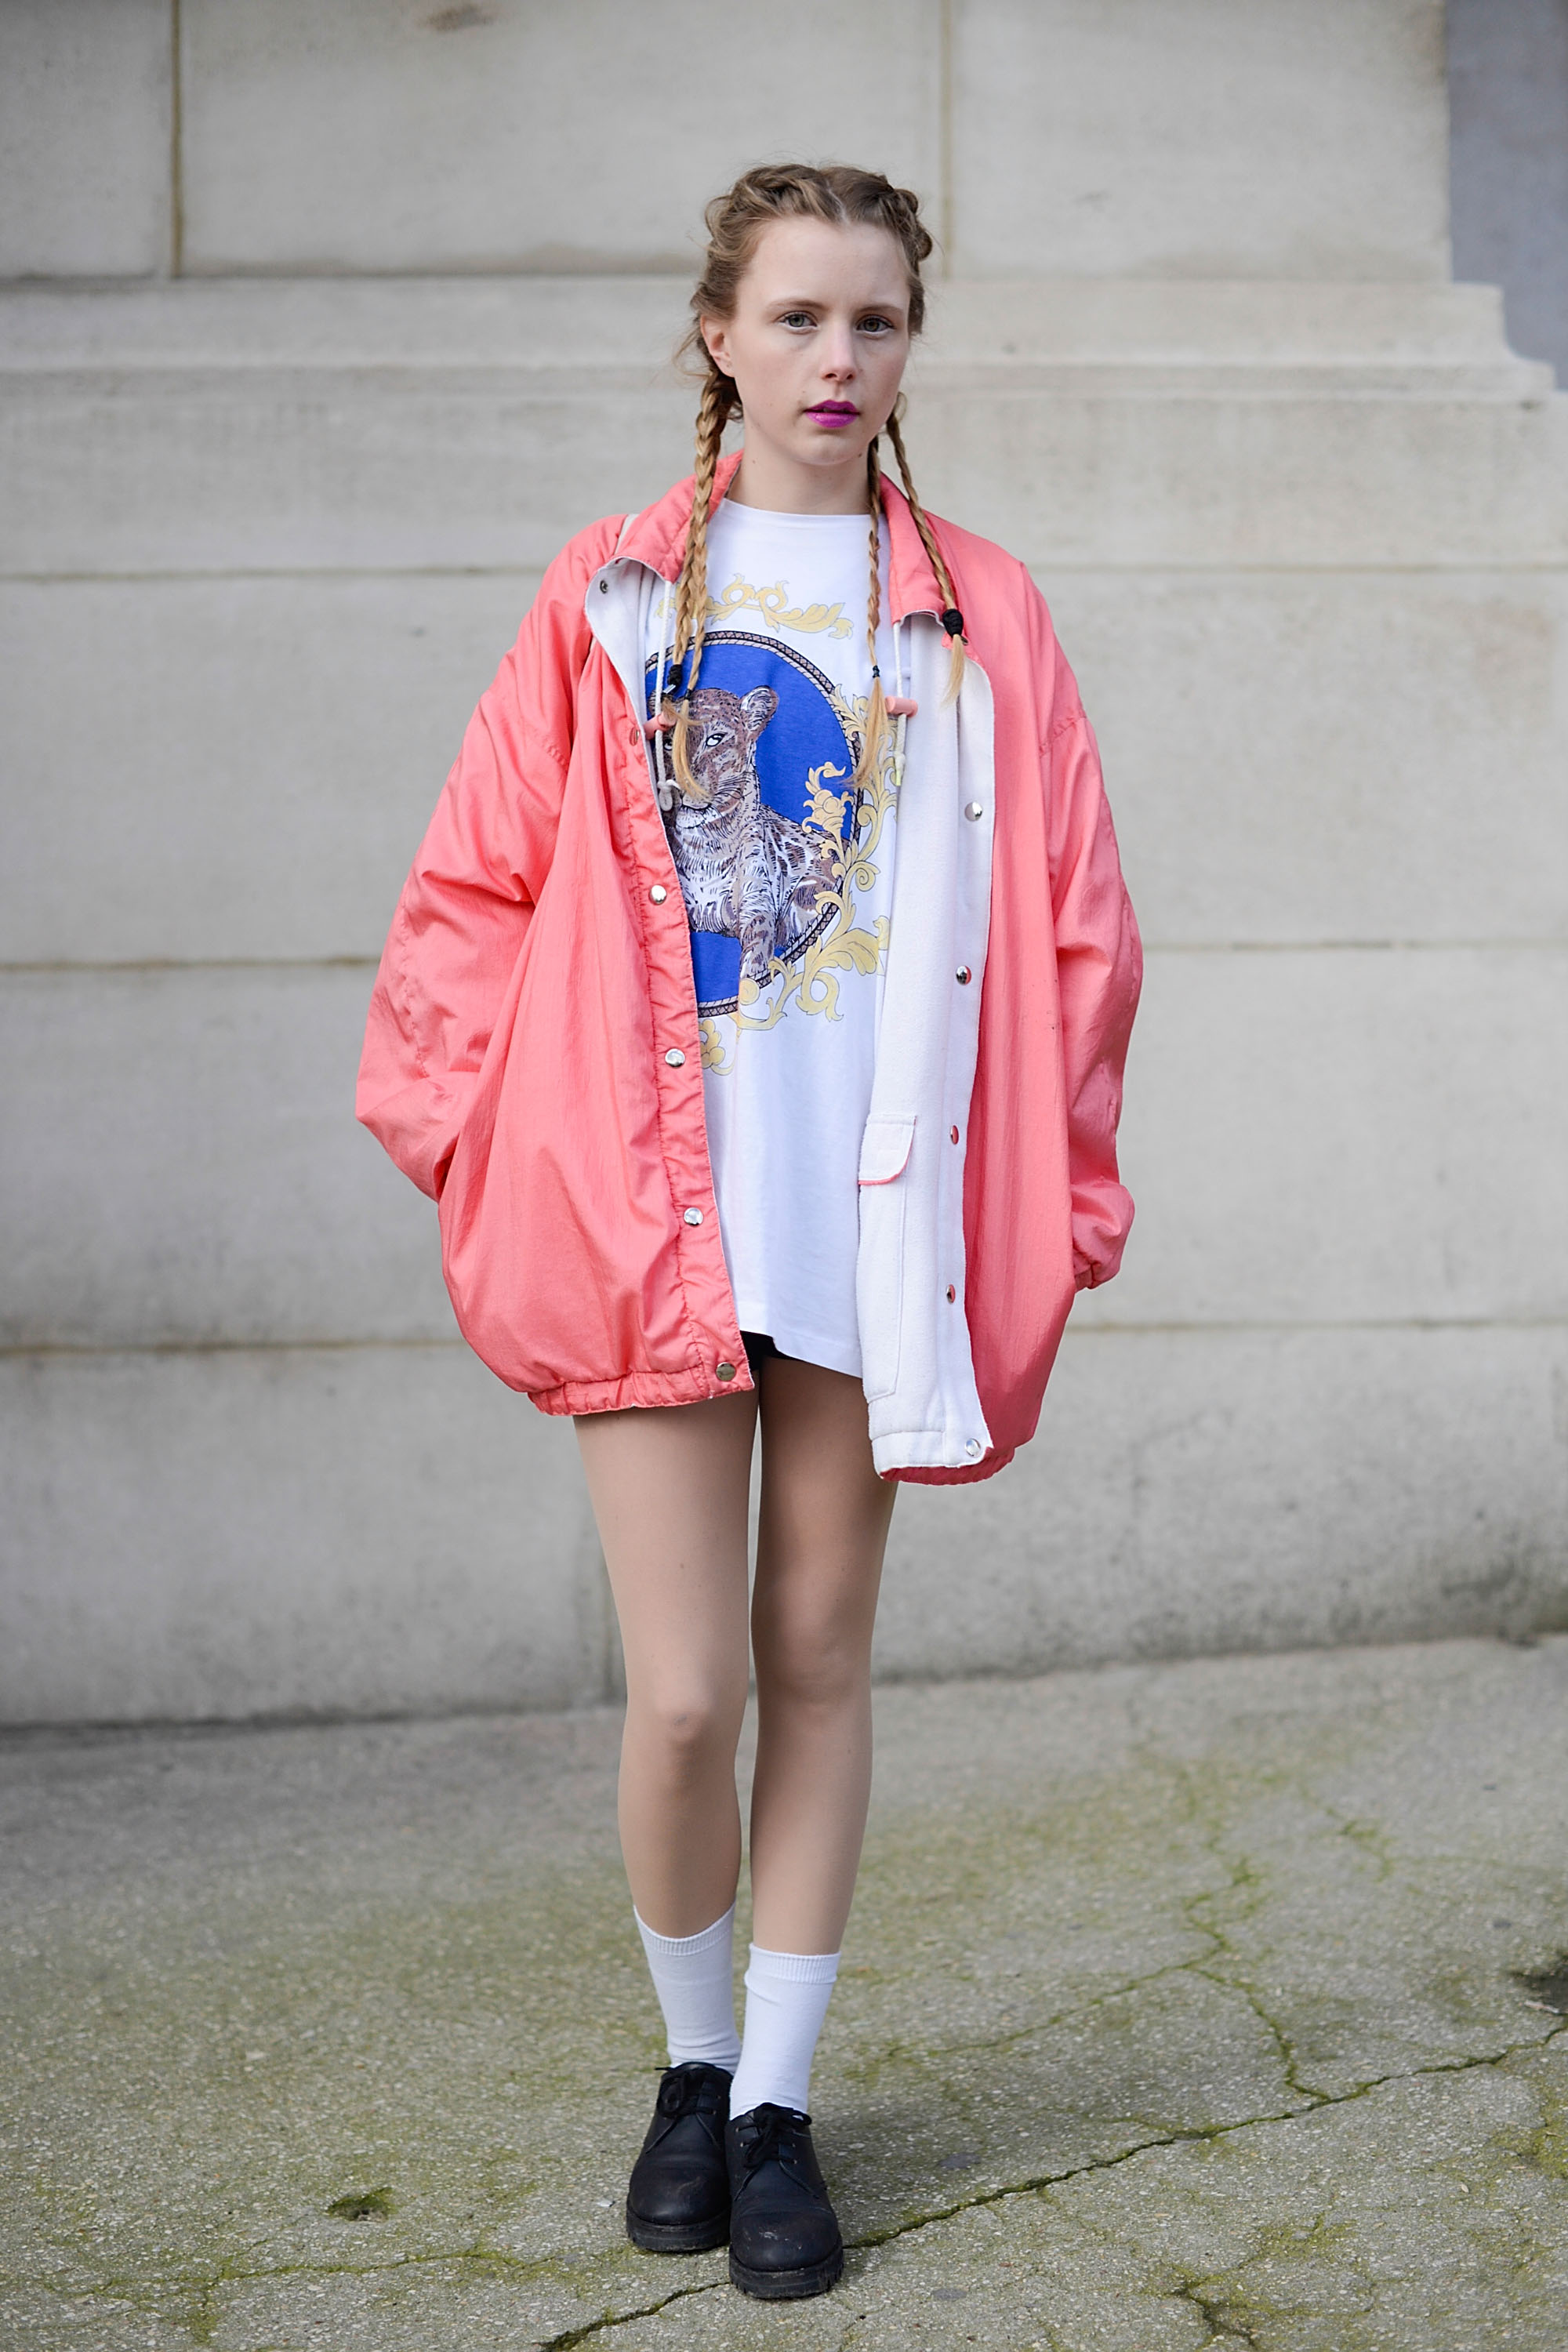 PARIS, FRANCE - MARCH 04: Fashion blogger Marie Myrhoj Jensen poses wearing a vintage jacket, Asos t-shirt and Marni shoes after the Chanel show at the Grand Palais on March 4, 2014 in Paris, France.  (Photo by Vanni Bassetti/Getty Images)